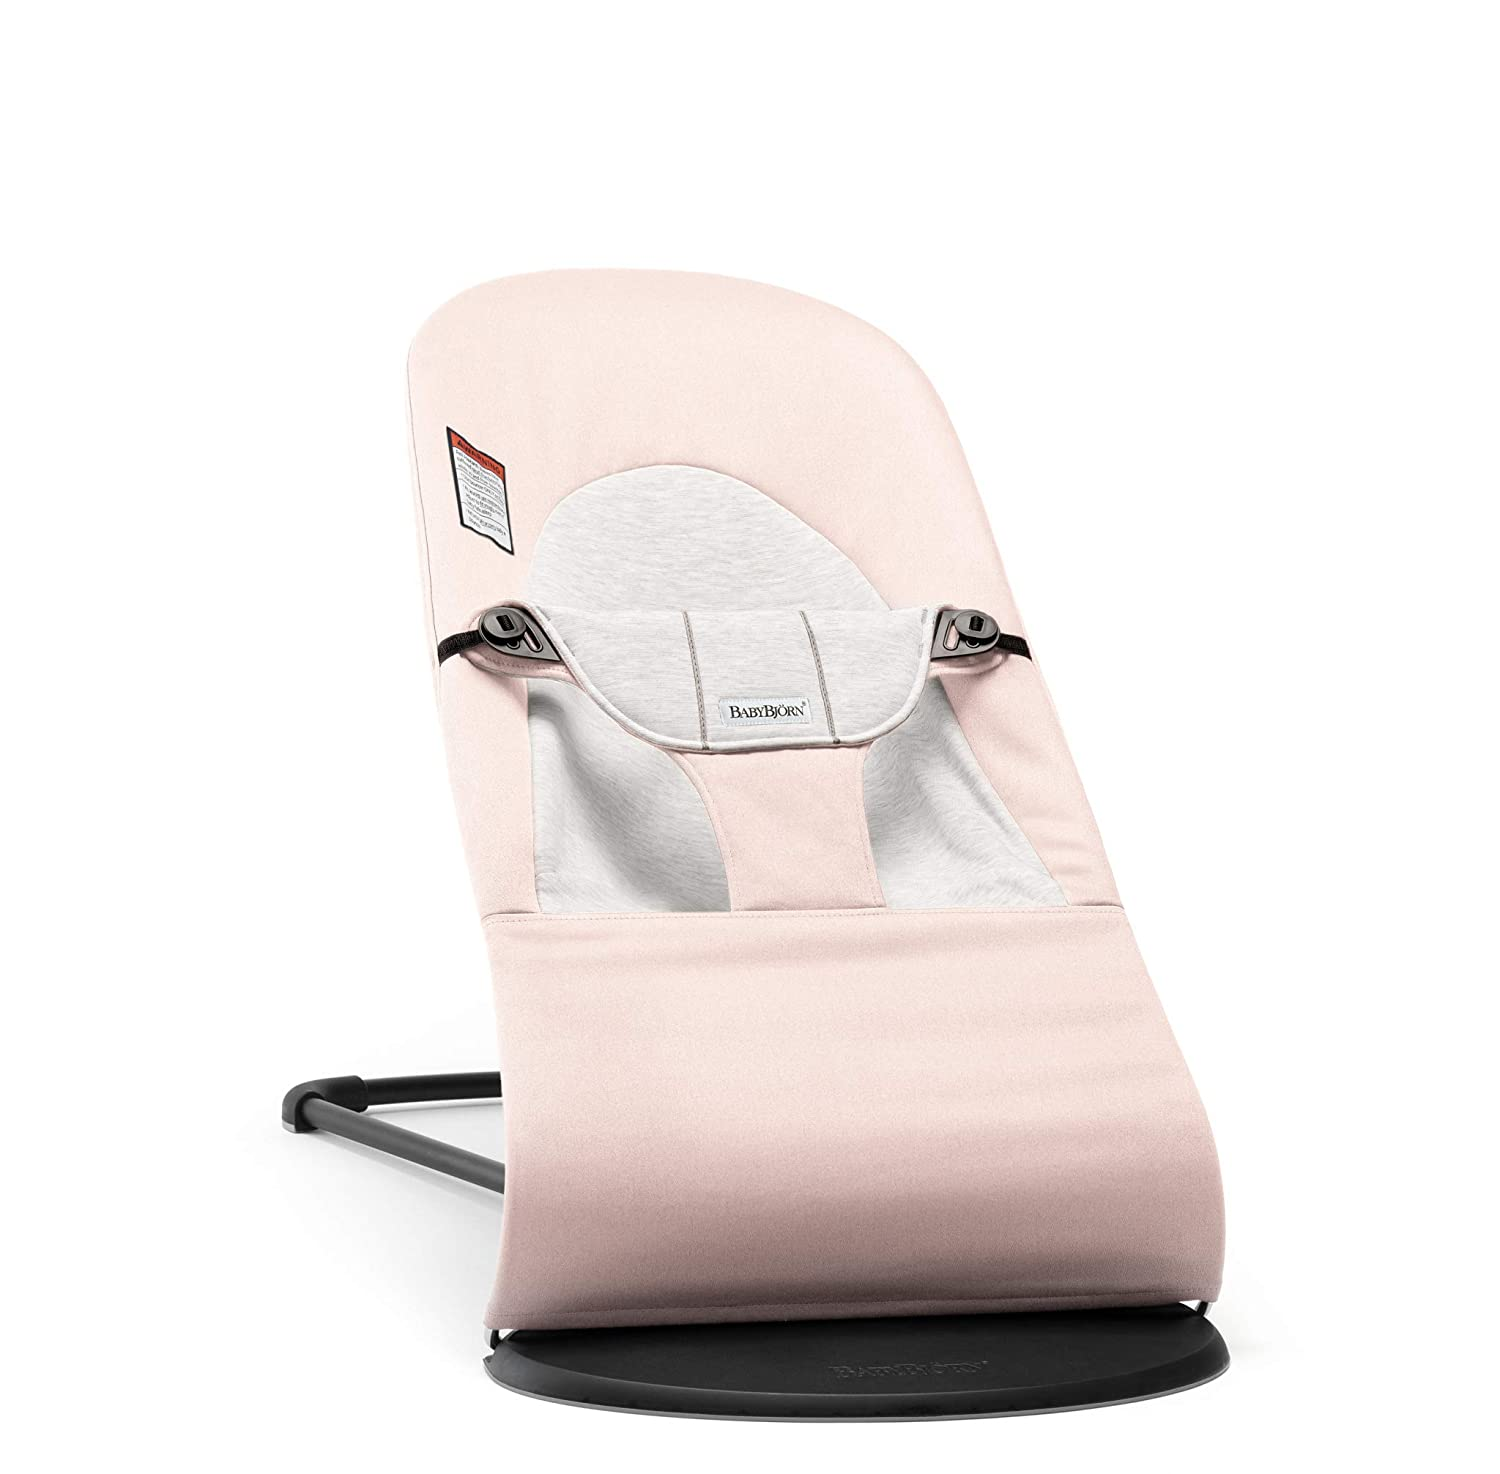 BABYBJÖRN Bouncer Balance Soft, Cotton/Jersey, Light Pink/Gray